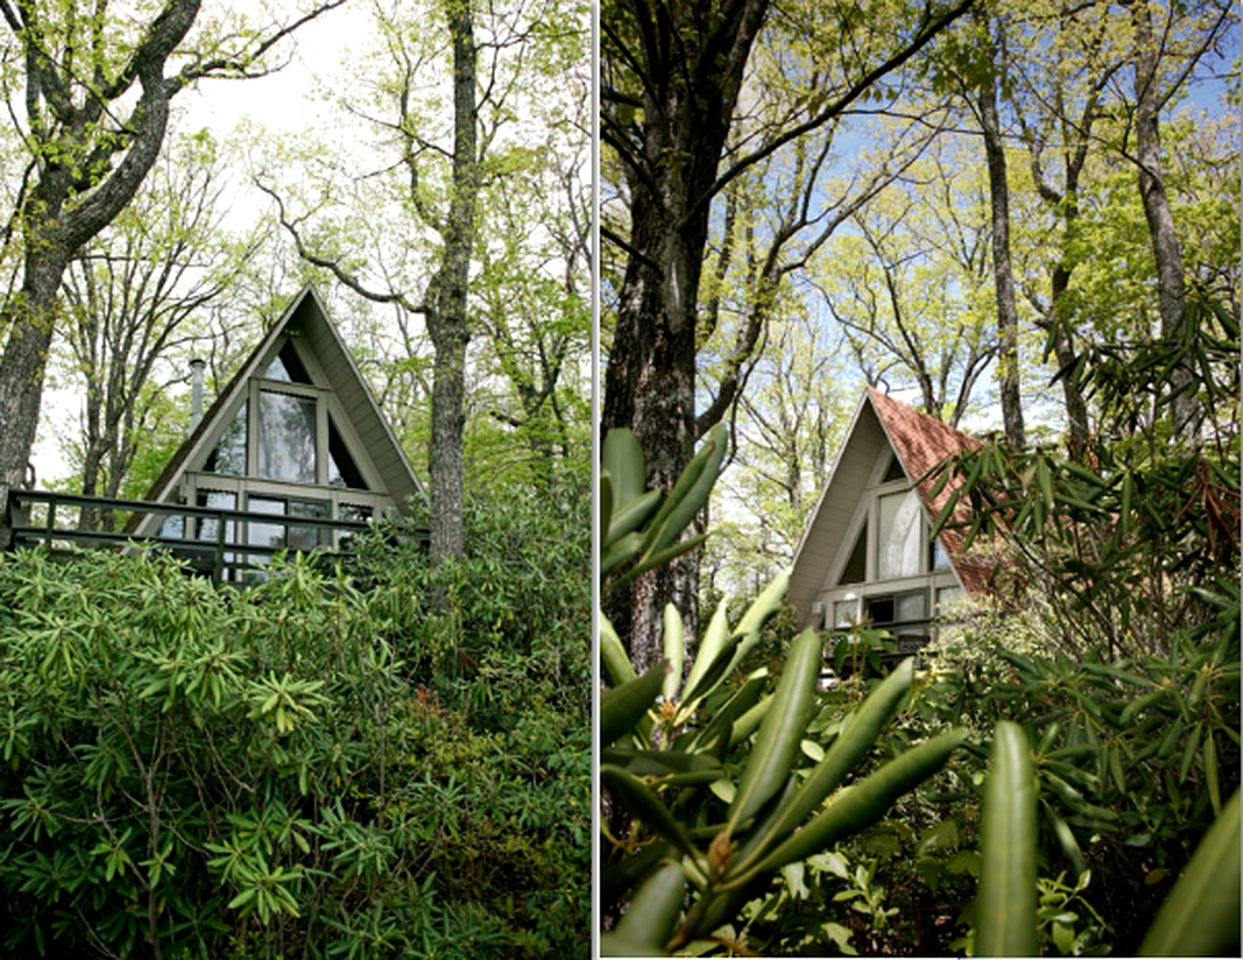 A-Frame Cabins (Burnsville, North Carolina, United States)